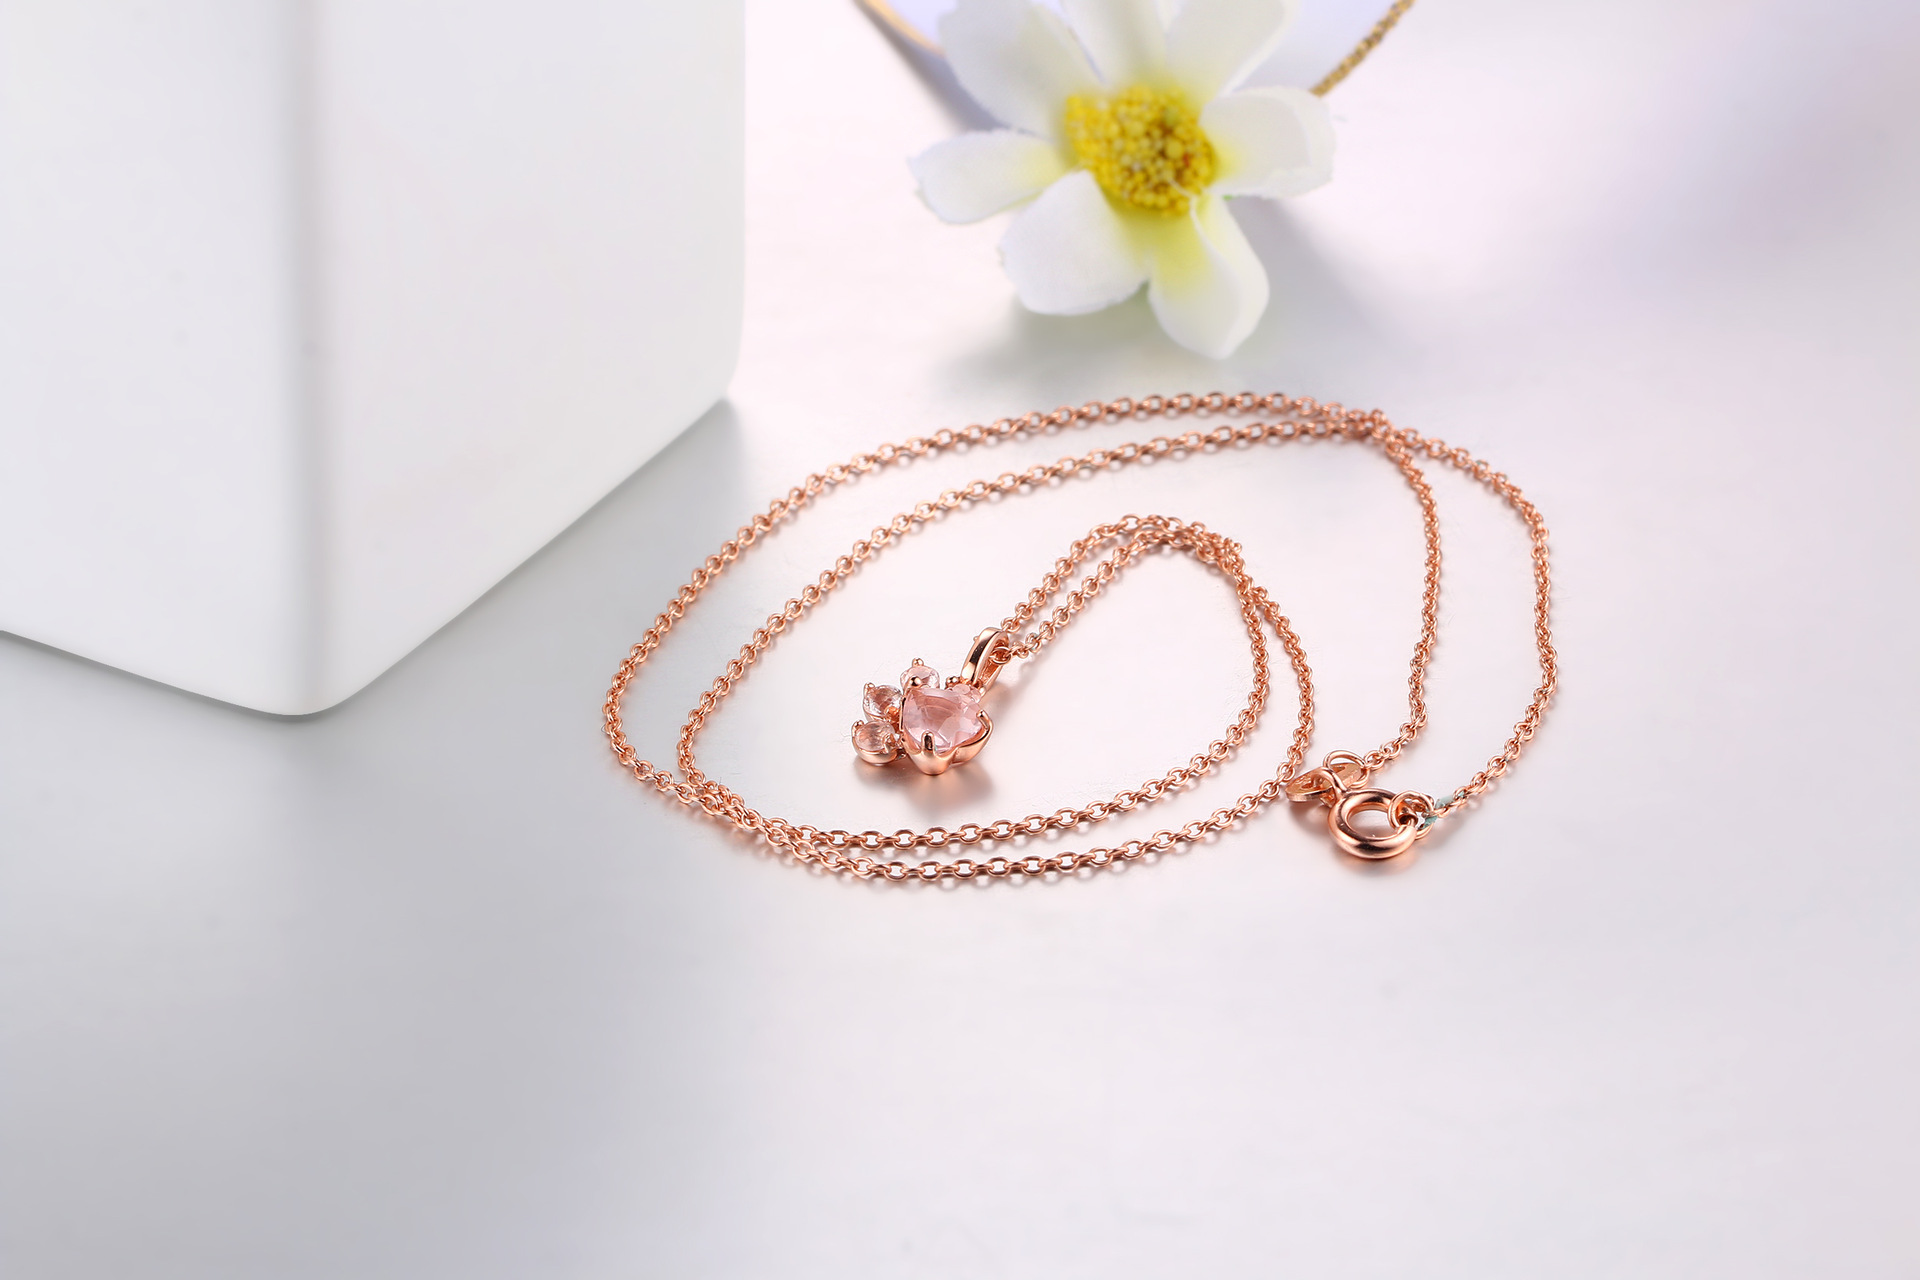 Natural rose quartz stone necklace dog paw pendant necklace